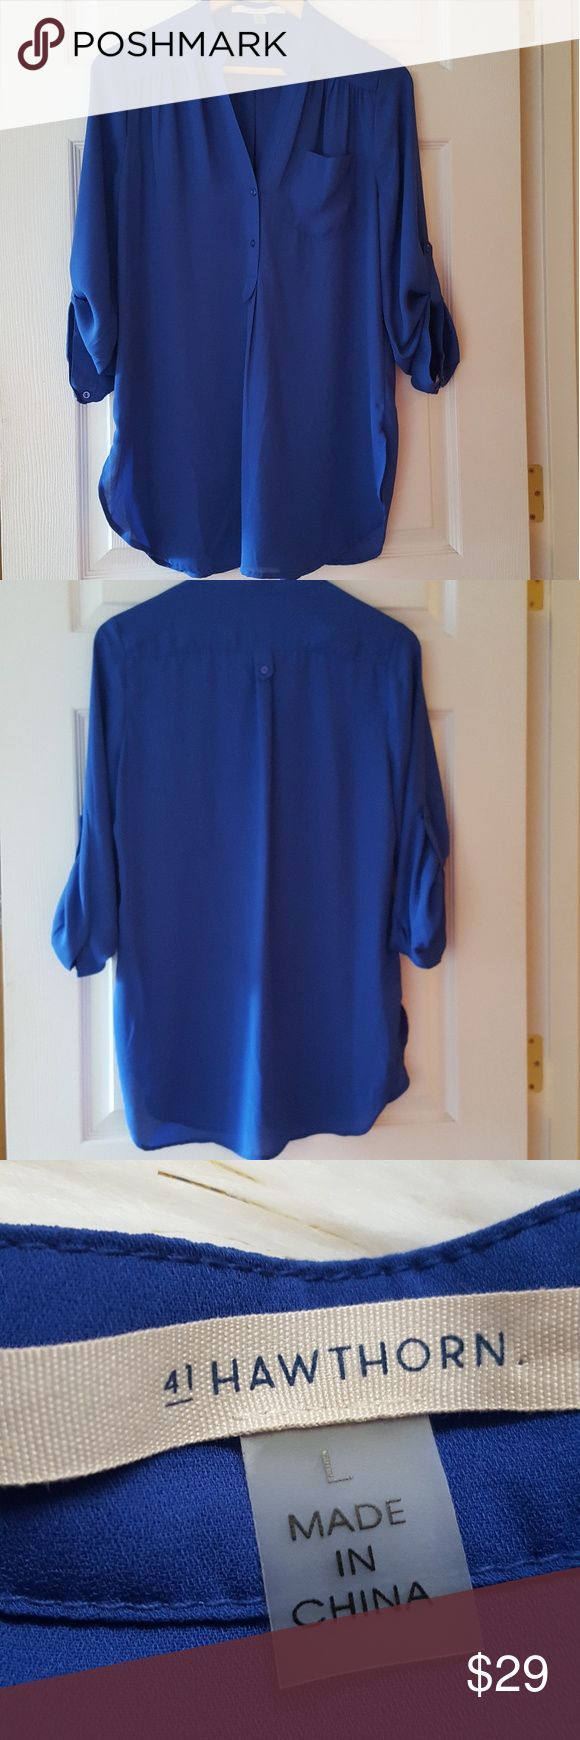 """⏱price drop! stitch fix 41 hawthorne tunic blouse Excellent condition. Perfect to wear over leggings! Measurements lying flat:  Bust: 21"""" Length:30"""" 100% polyester  -Smoke-free home  -Reasonable offers welcome, but prices are firm on items under $10.  -No trades, please.  -All measurements are approximate.  💕💕💕Thank you for shopping my closet, it means a lot to me!💕💕💕 Stitch Fix Tops Tunics"""